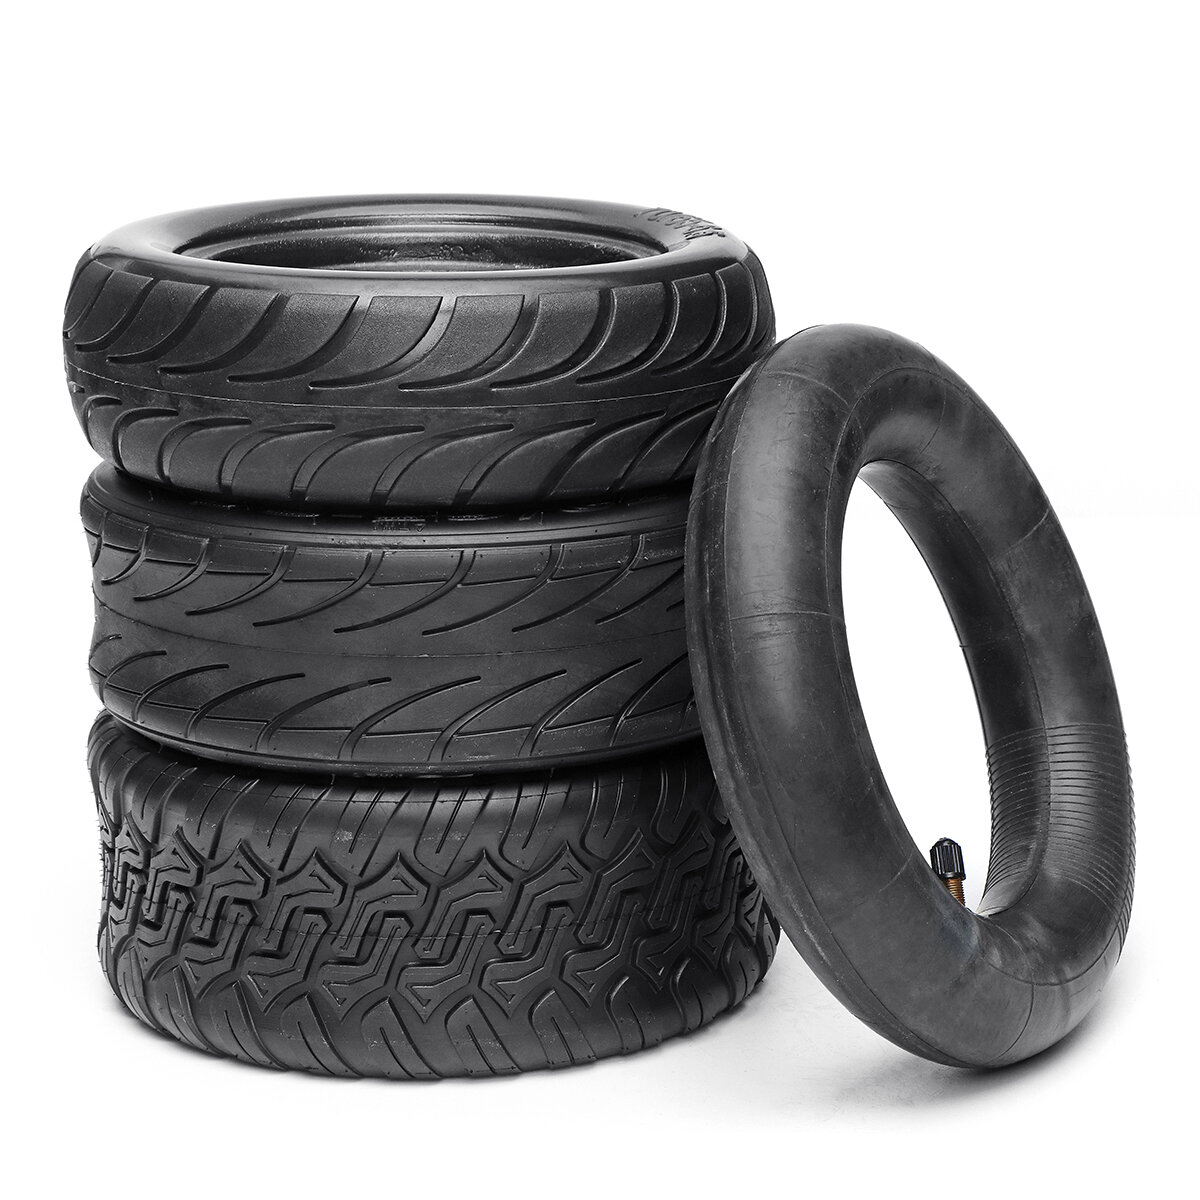 Best Off Road Tires >> Scooter Off Road Tire Tubeless Tyre For Ninebot Minipro Minilite